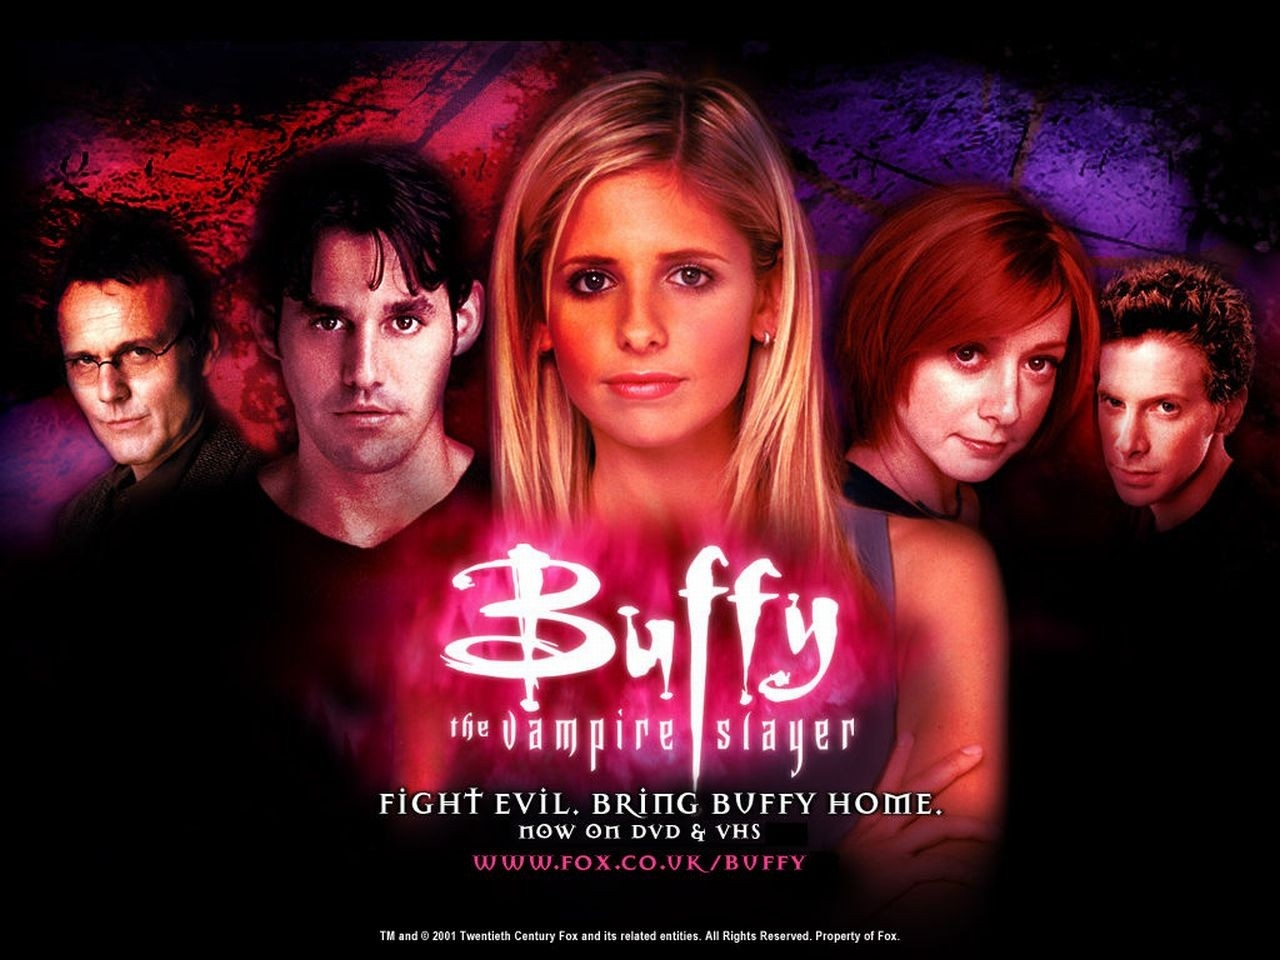 Wallpaper della serie Buffy - L'ammazzavampiri